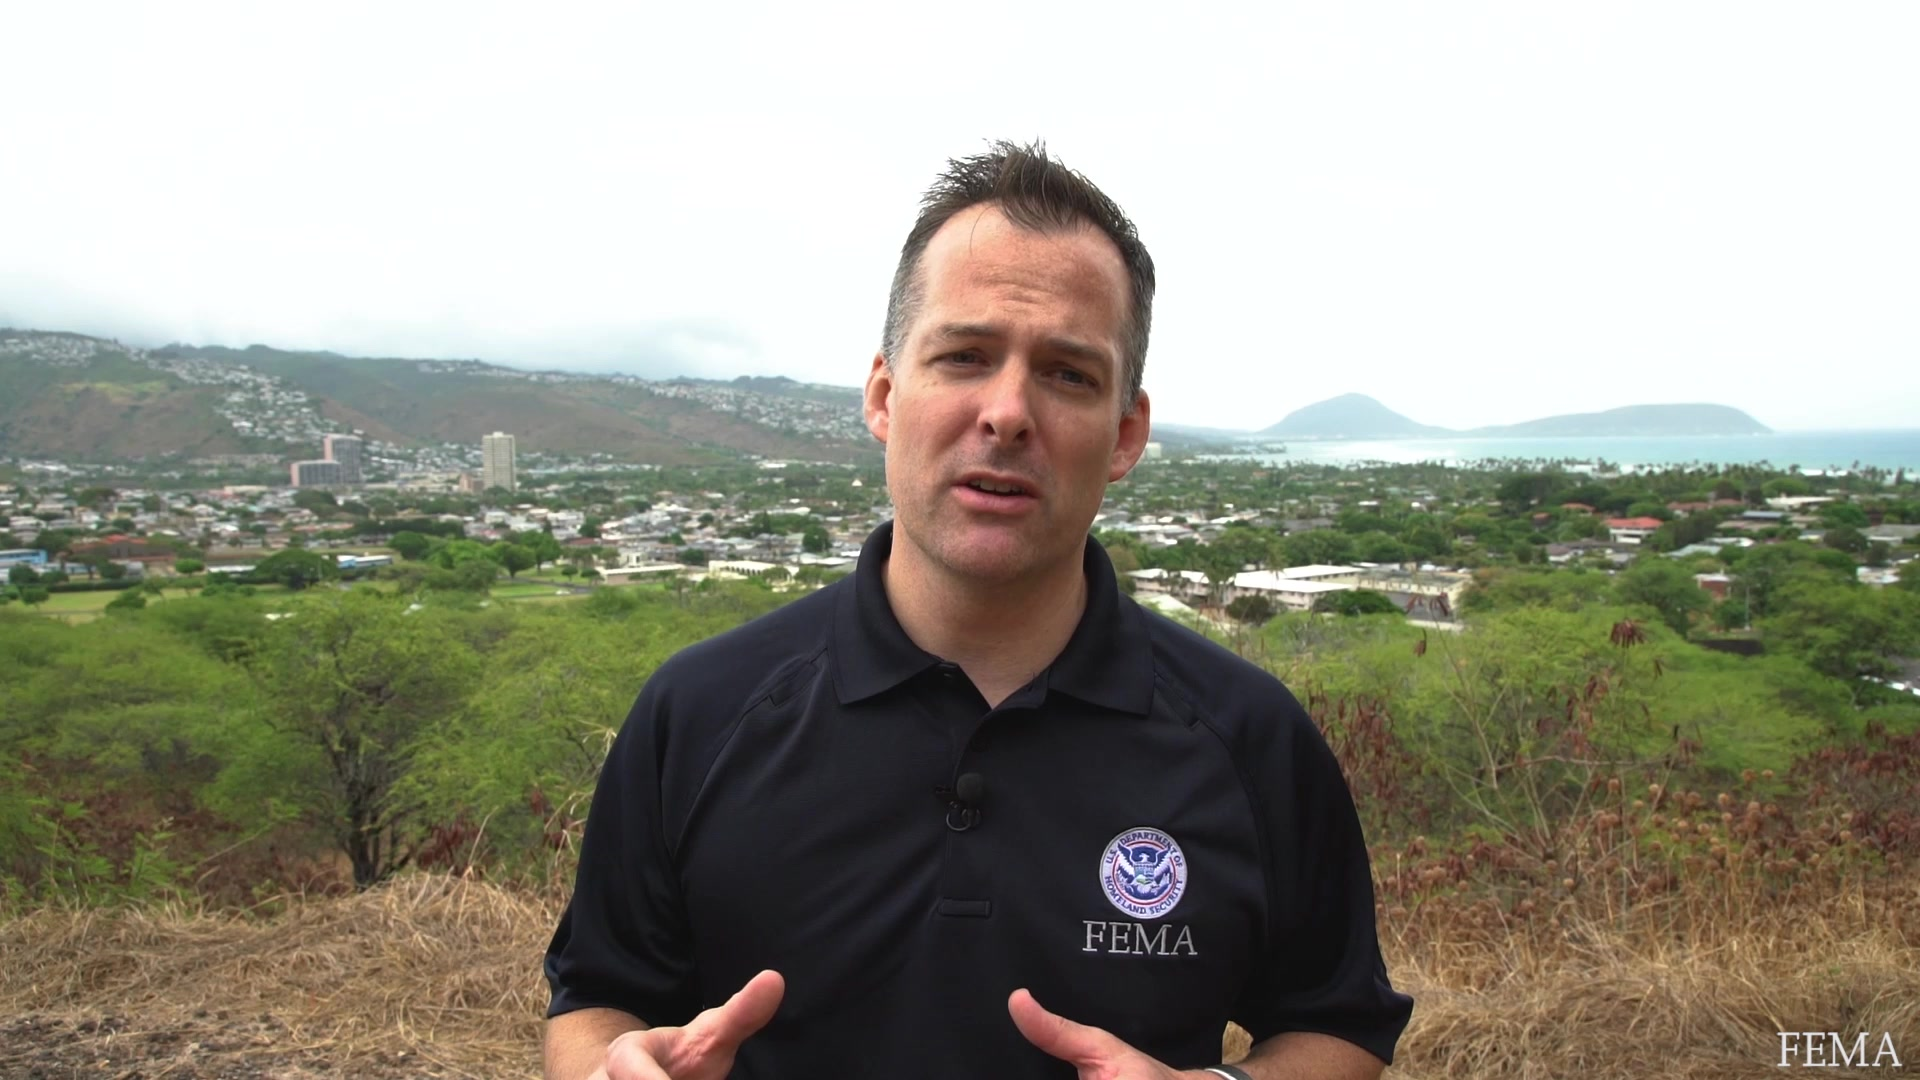 FEMA Public Affairs Director Mark Peterson gives preparedness tips ahead of Hurricane Lane. Listen to local officials and be prepared. For more information visit Ready.gov.